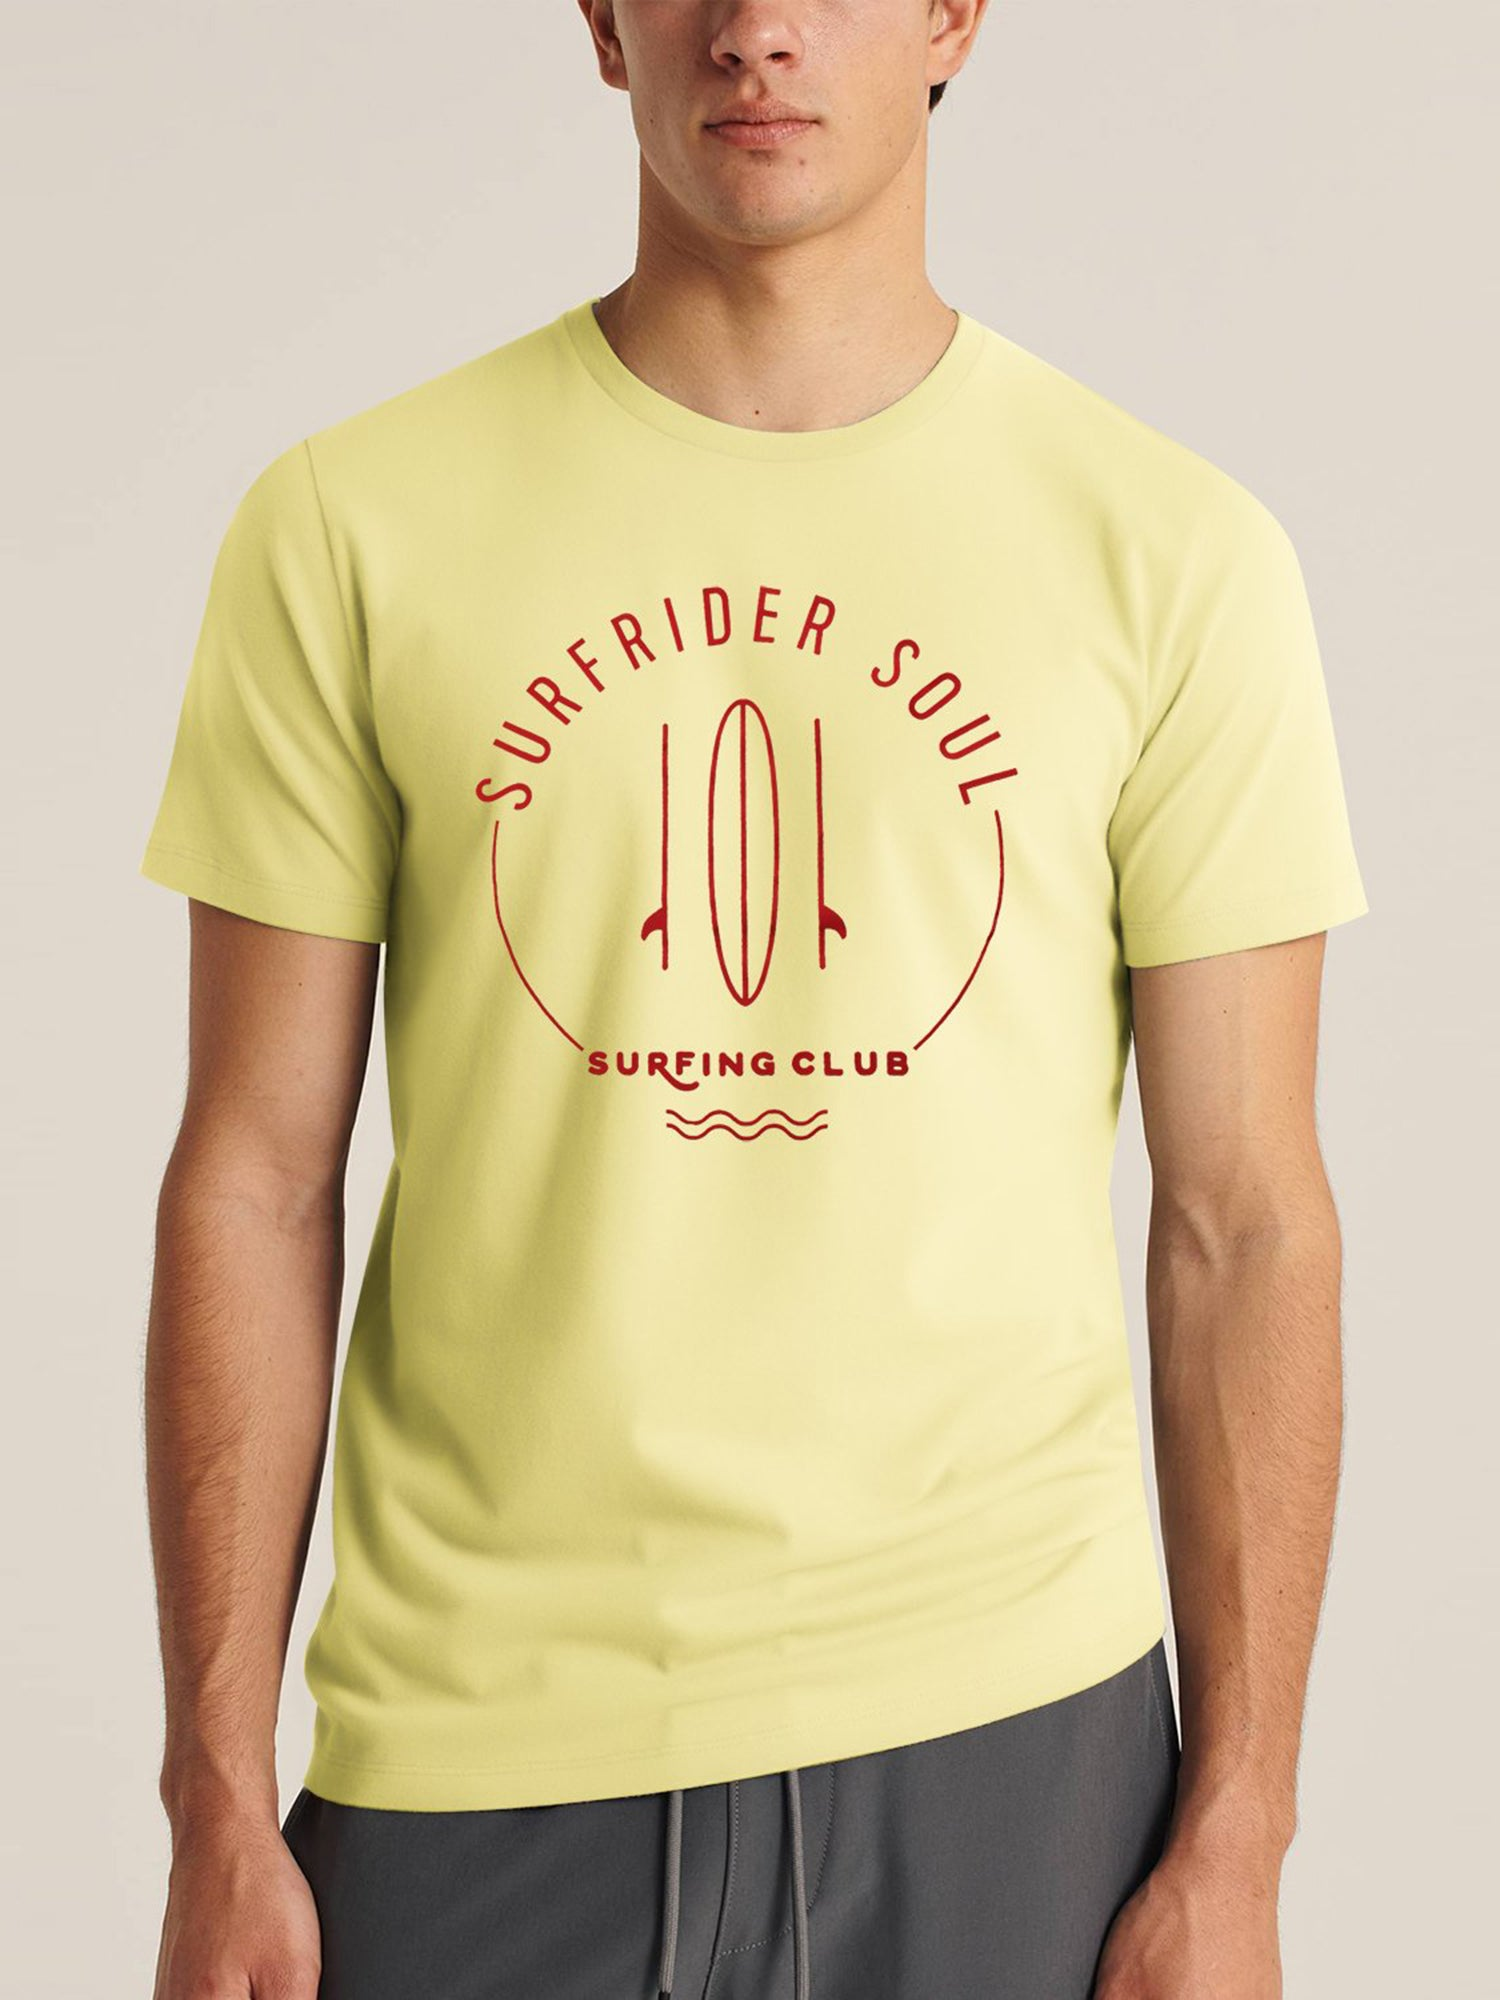 Surfing Club Stylish Summer Tee Shirt For Men-Light Yellow with Print-BE11371